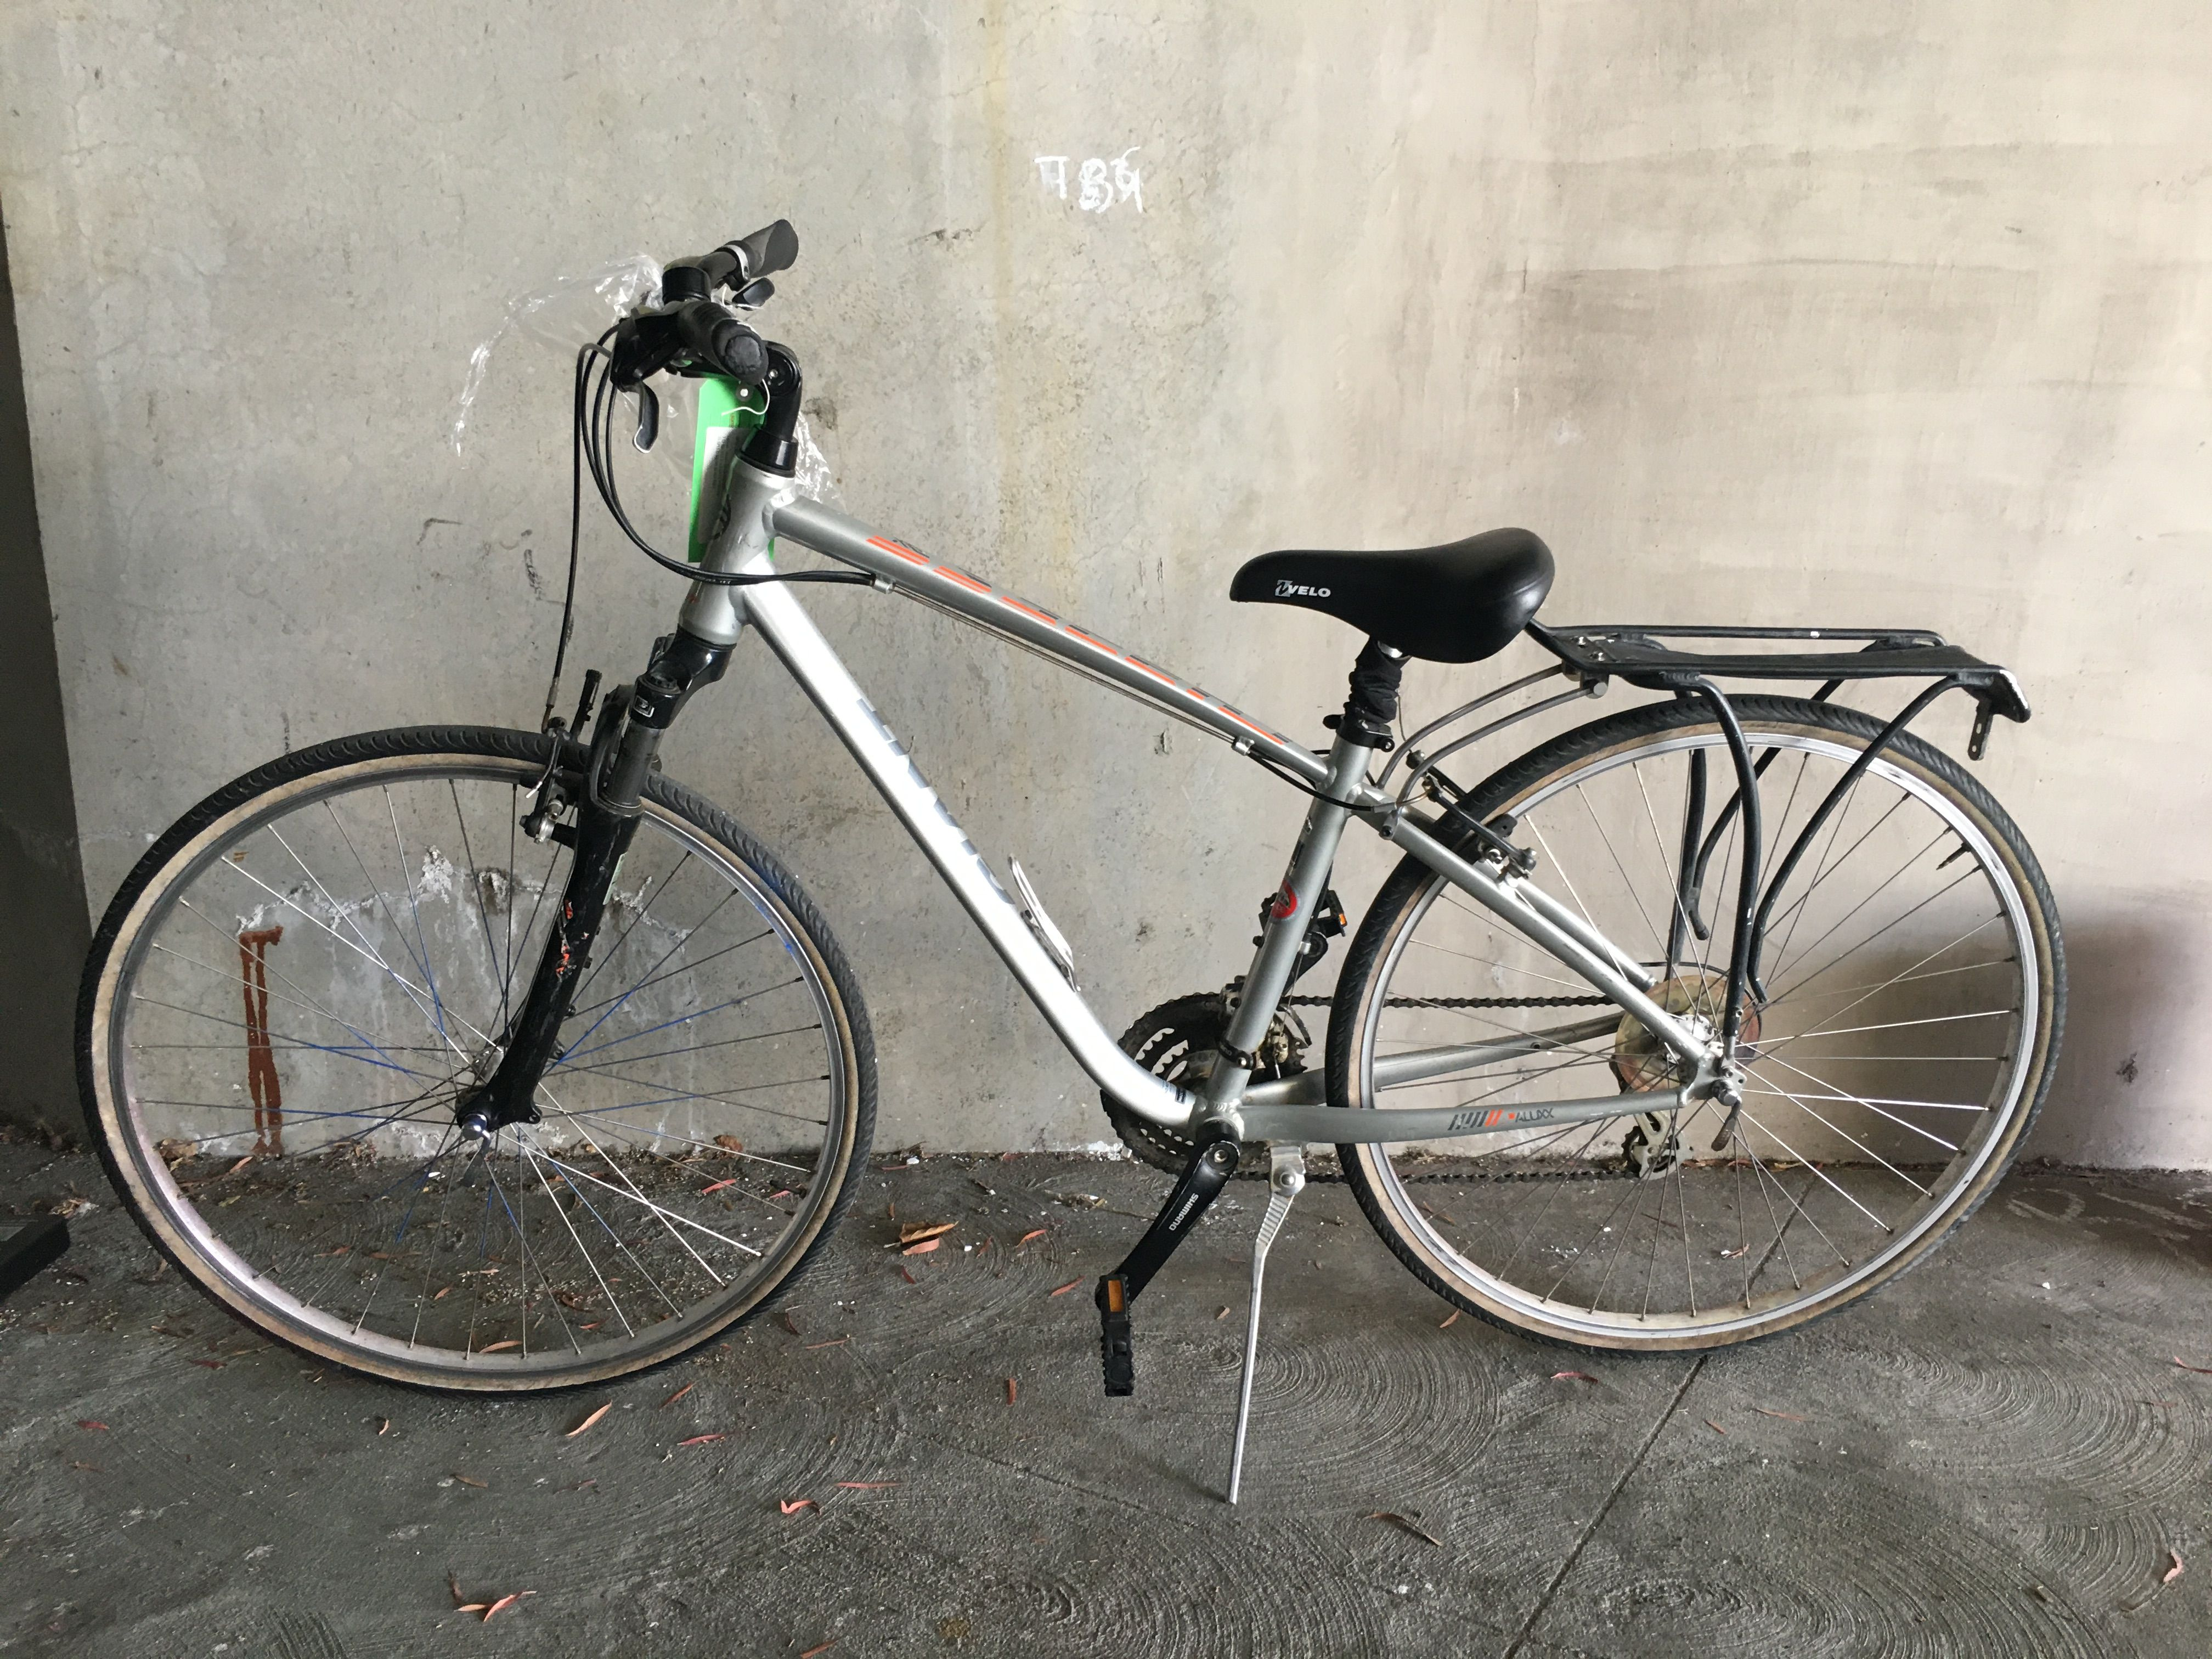 This image shows a bike believed to belong to the suspect in a sexual assault that took place in San Mateo, Calif. on Aug. 5, 2020.